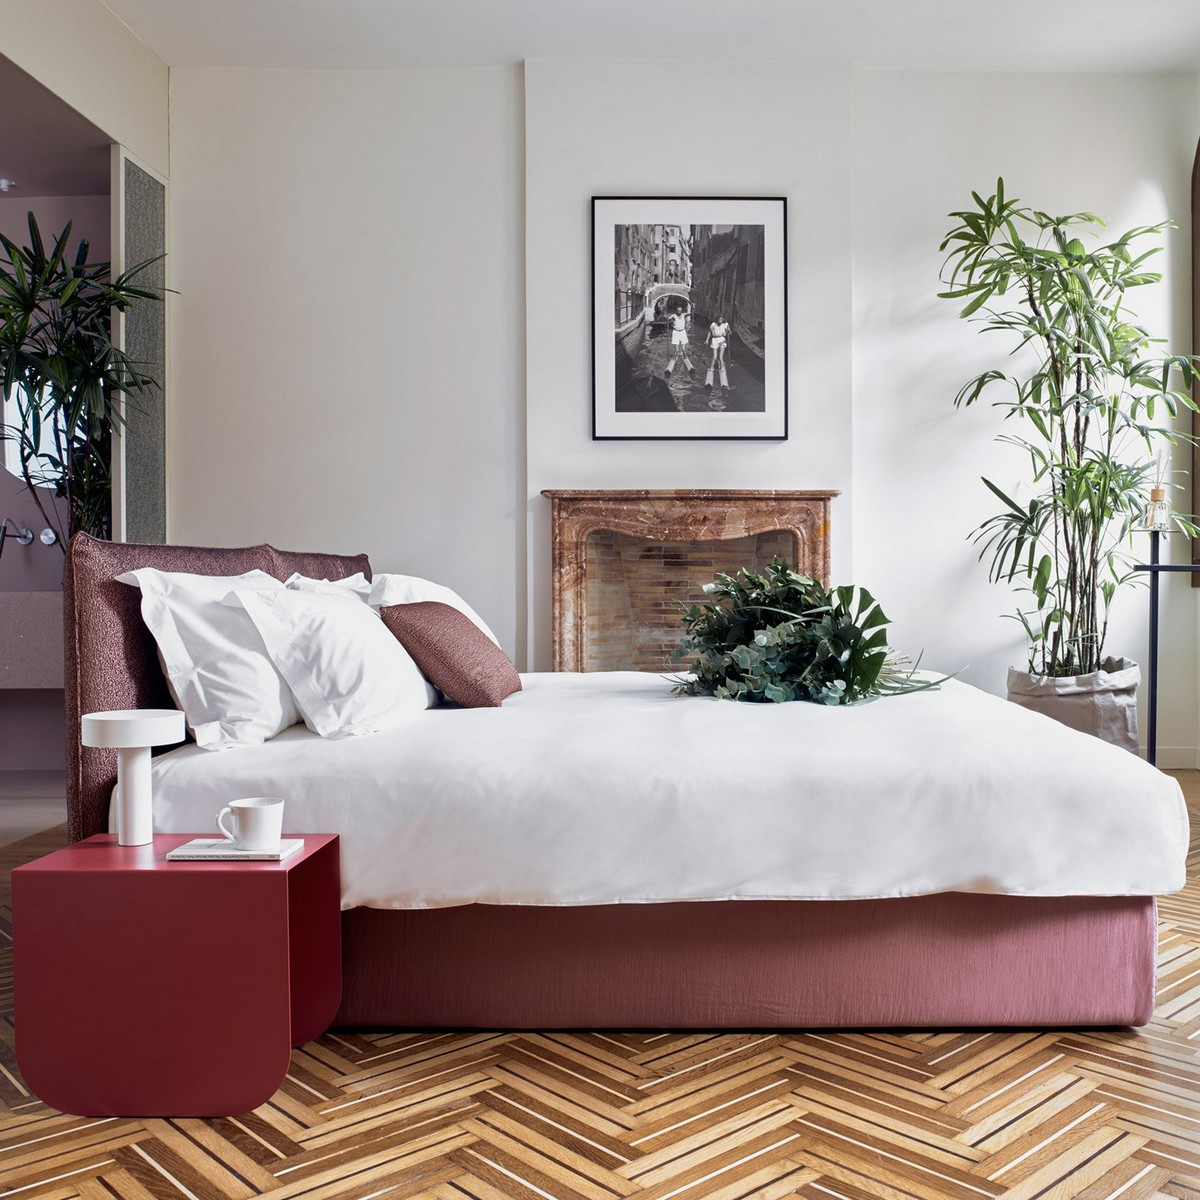 Top 10 Best Hotels of 2017: A Dezeen Selection | Thinking about next years vacation? We show you some awesome locations. #tophotels #hoteldesign #besthotels #luxuryhotels #traveldestinations #centertables best hotels Top 10 Best Hotels of 2017: A Dezeen Selection casa flora diego paccagnella interiors residential apartments venice italy dezeen sq c